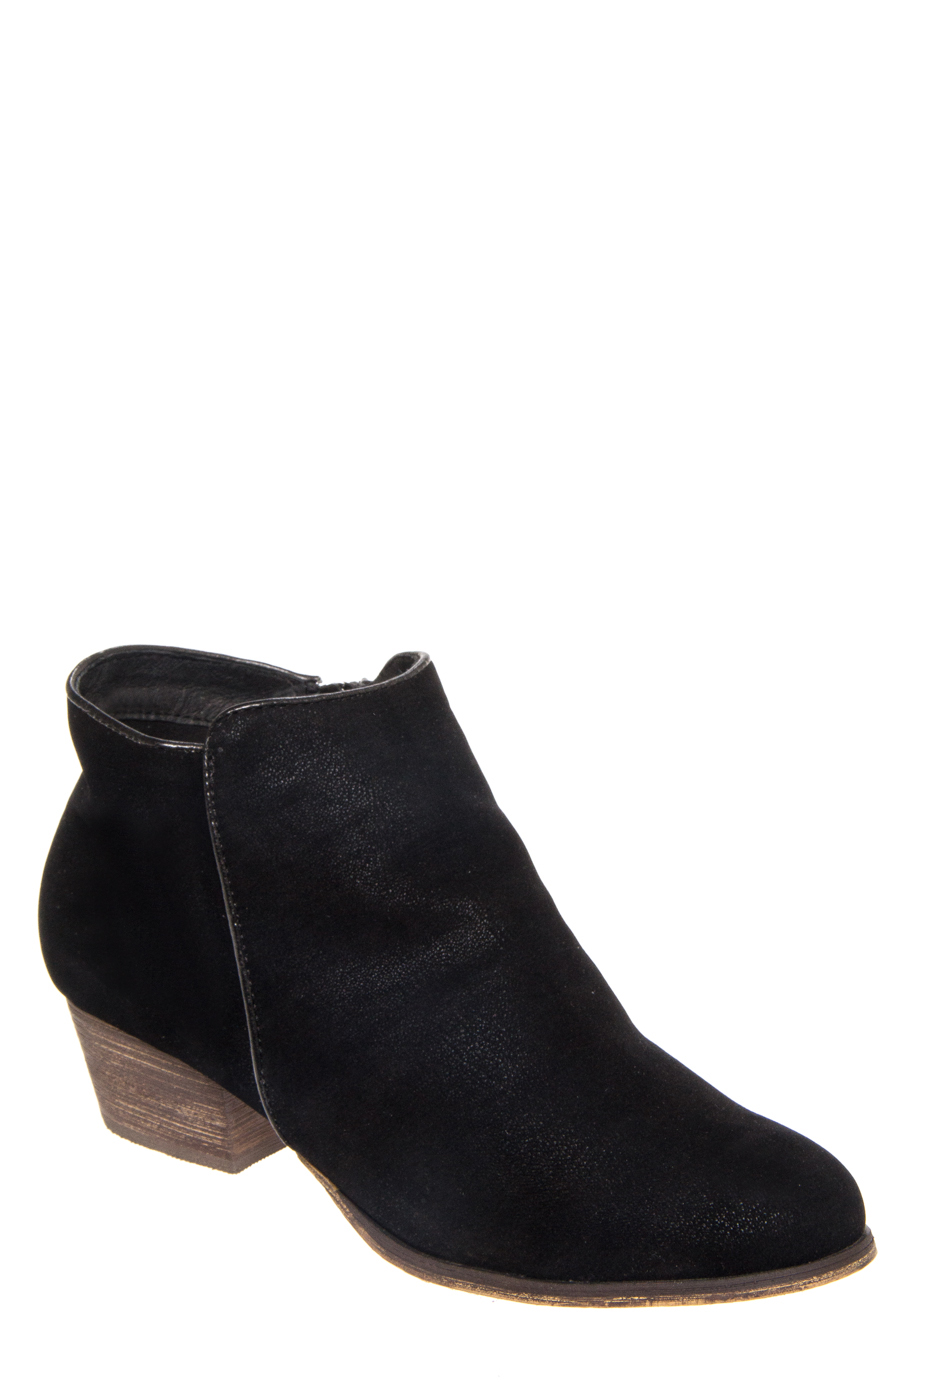 Chelsea Crew Dealer Low Heel Booties - Black